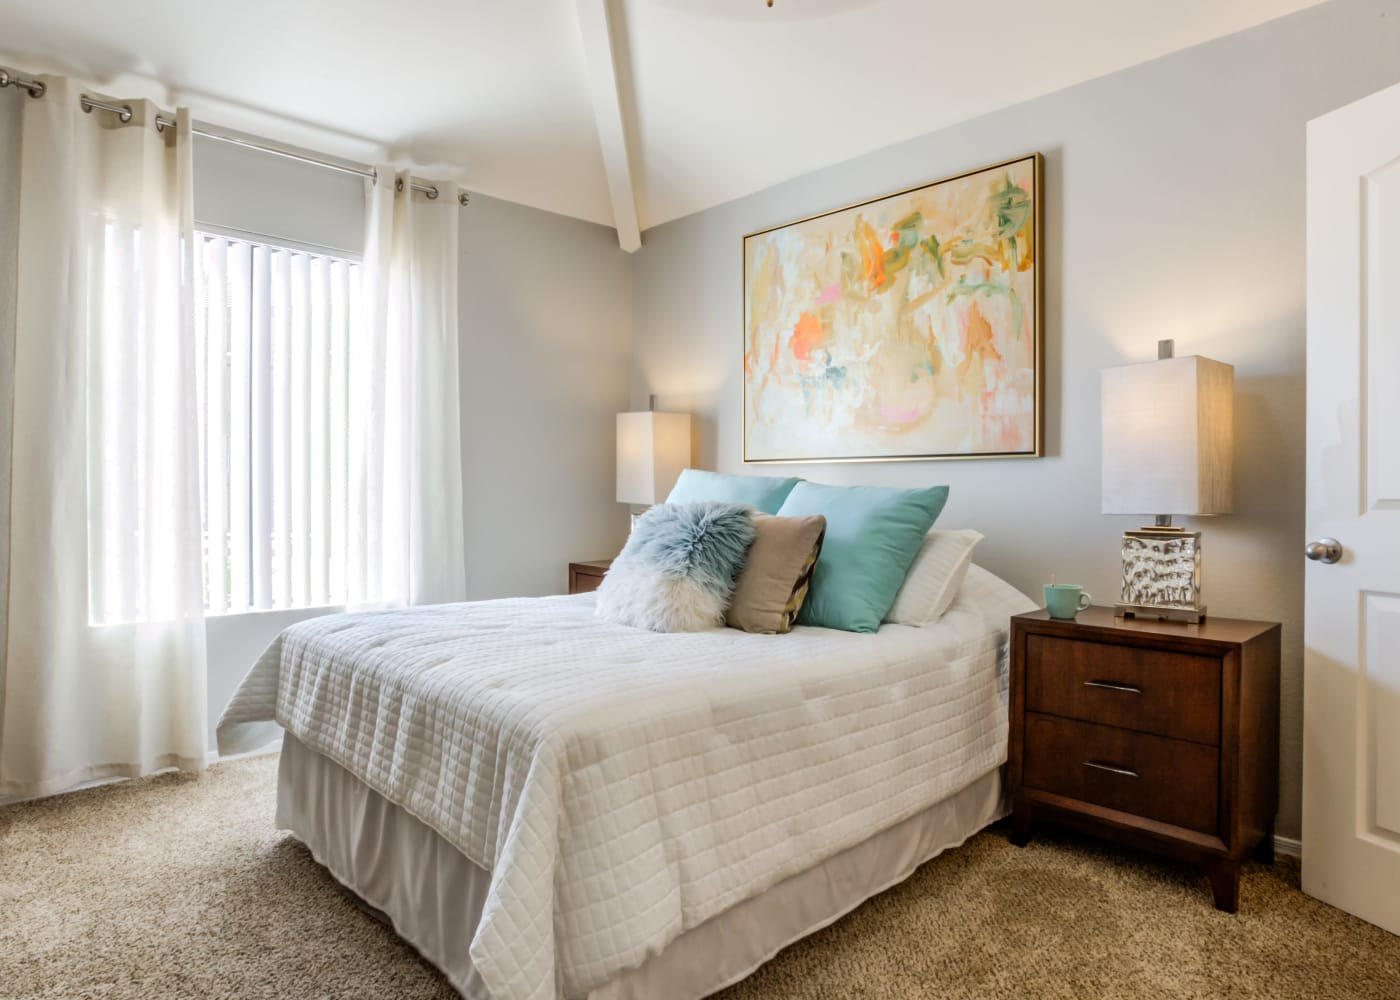 A view of the bedroom at CentrePoint Apartments